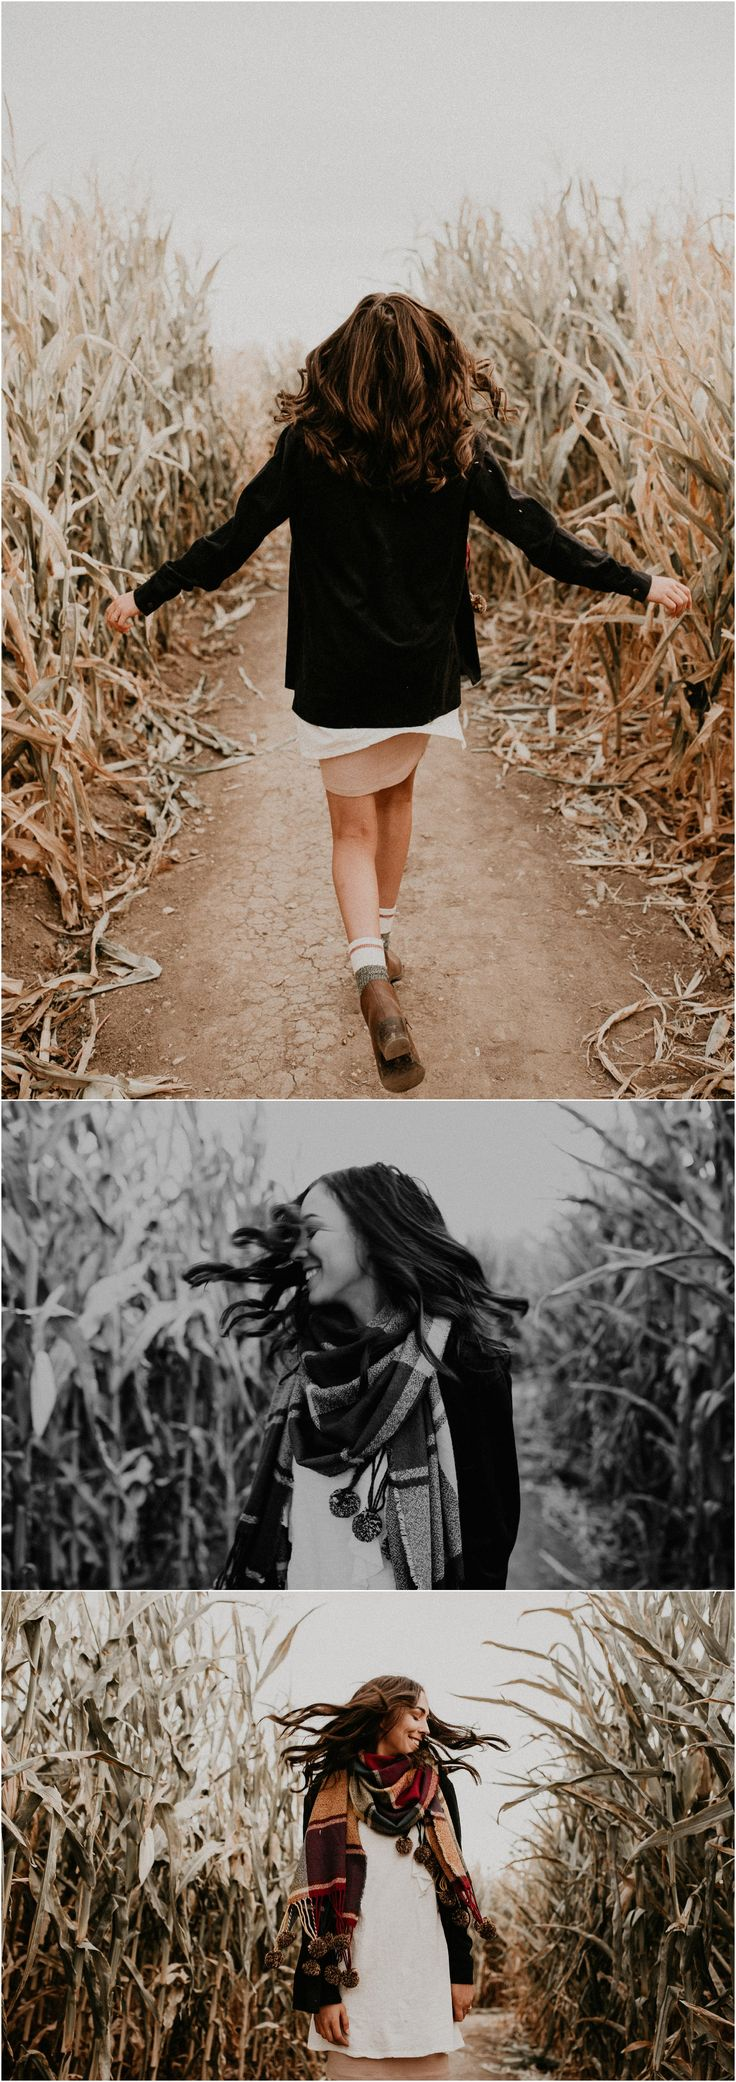 Boise Senior Photographer // Makayla Madden Photography // Idaho Farmstead // Corn Maze // Fall Senior Outfit Ideas Inspiration // Pumpkin Patch // Senior Photography // Senior Pictures // Senior Girl // Fall Aesthetic // Posing Ideas //